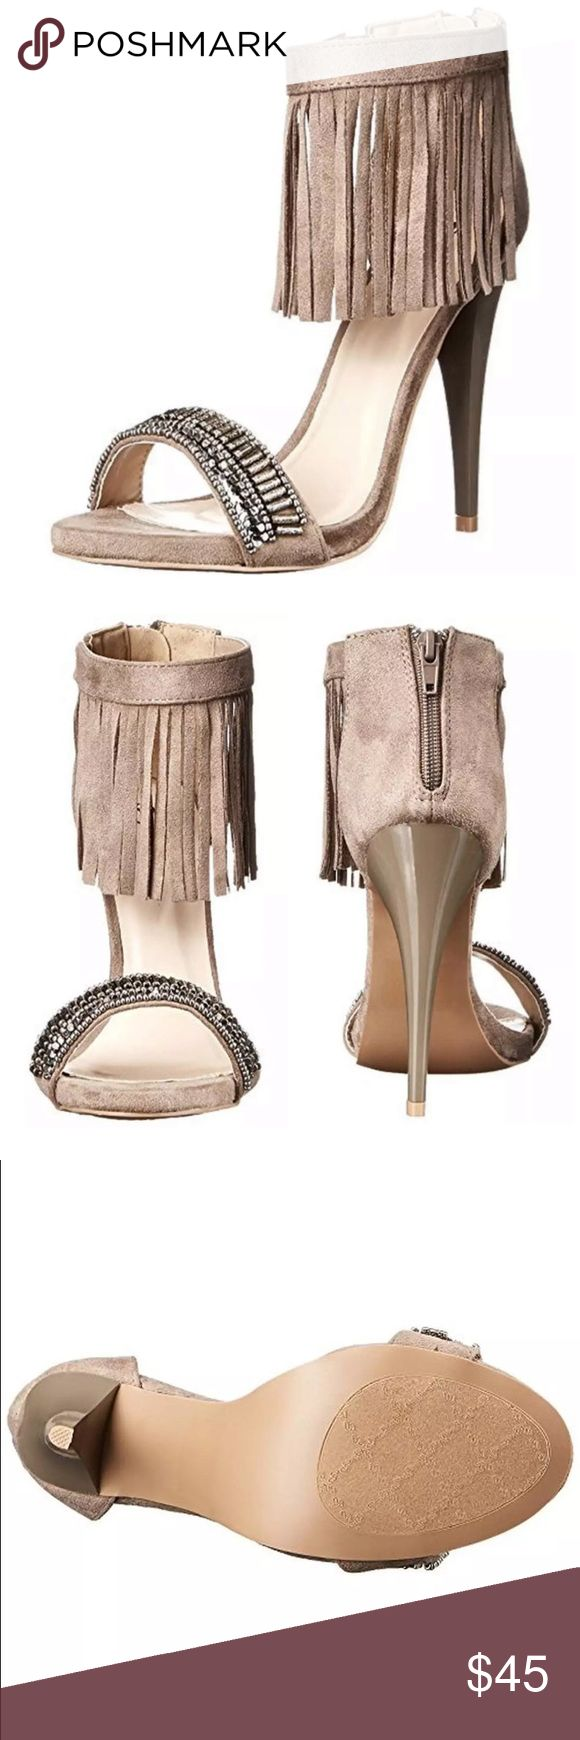 🆕Listing! Fringe Ankle Bling Heel! NEW! Amazing heels! Light taupe. Faux suede. NIB! Shoes Heels